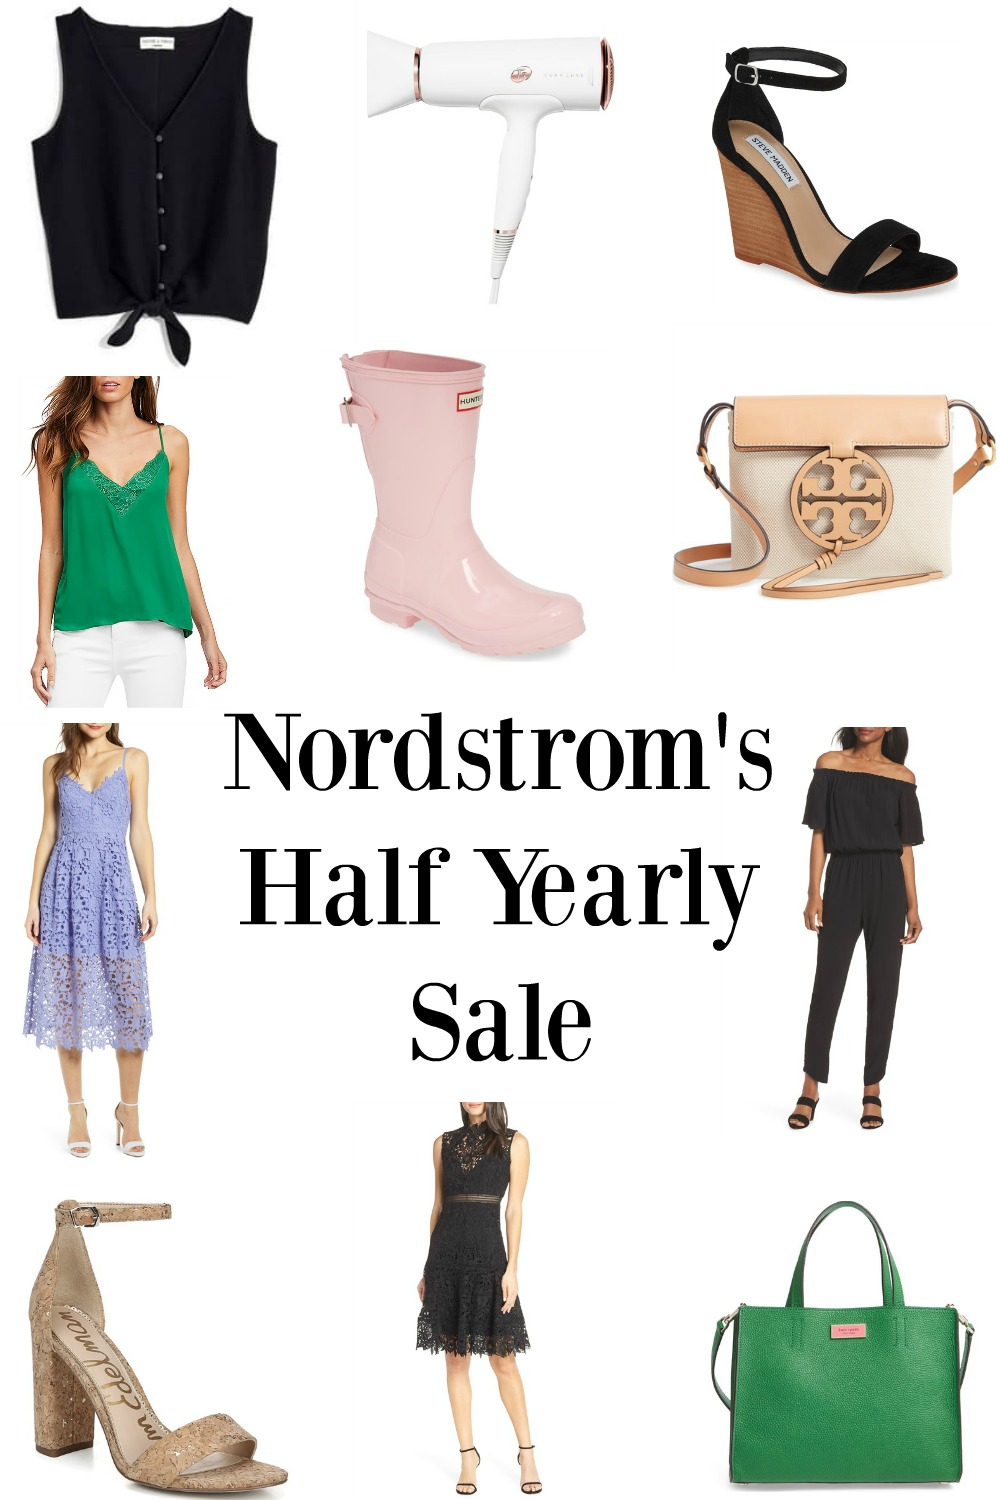 7384a88a5e5 Best Of Nordstrom's Half-Yearly Sale - Daily Dose of Style